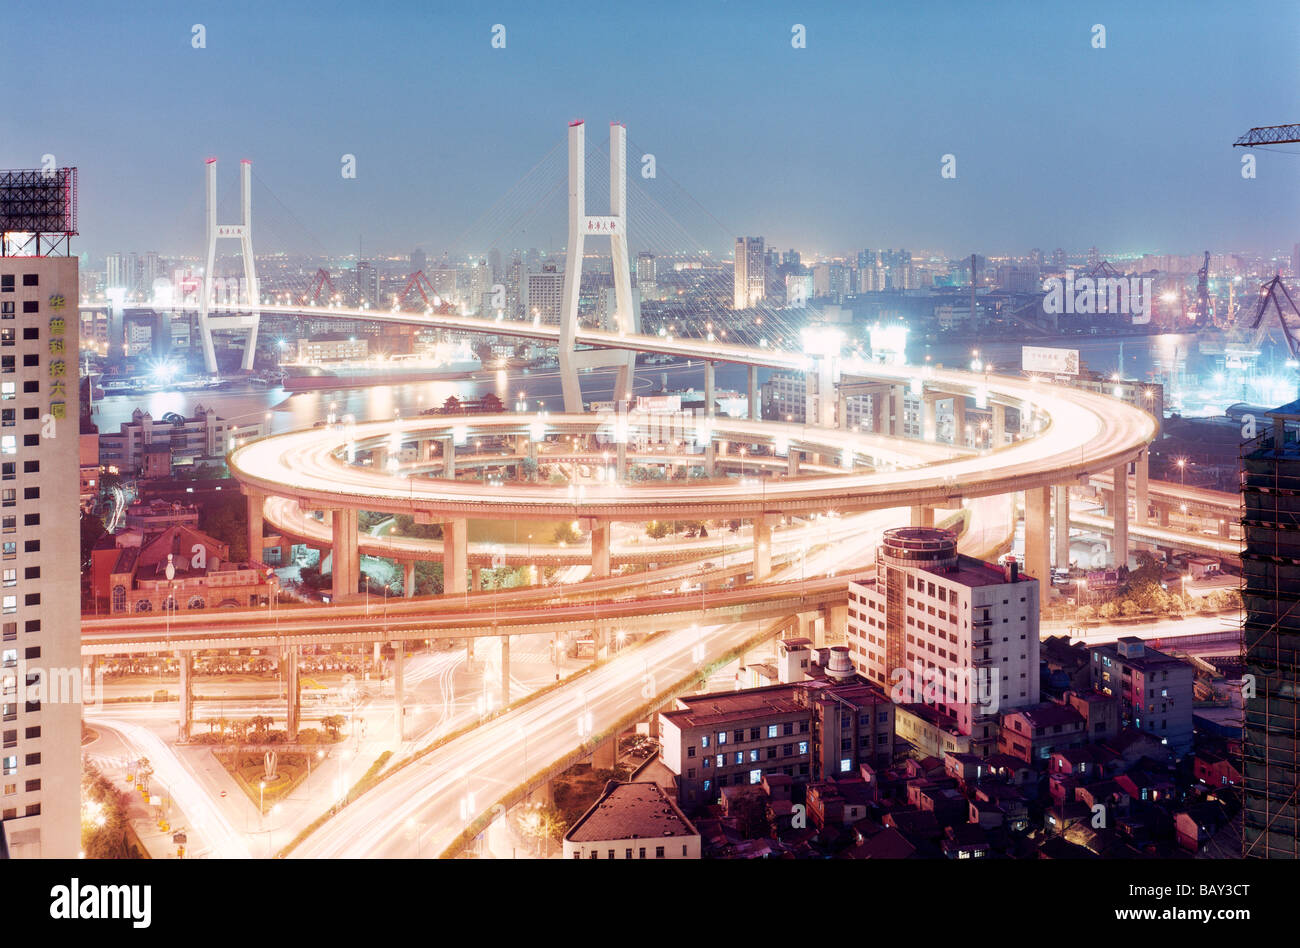 Trails of blurred light on the Nanpu Bridge, View of the city, Shanghai, China Stock Photo